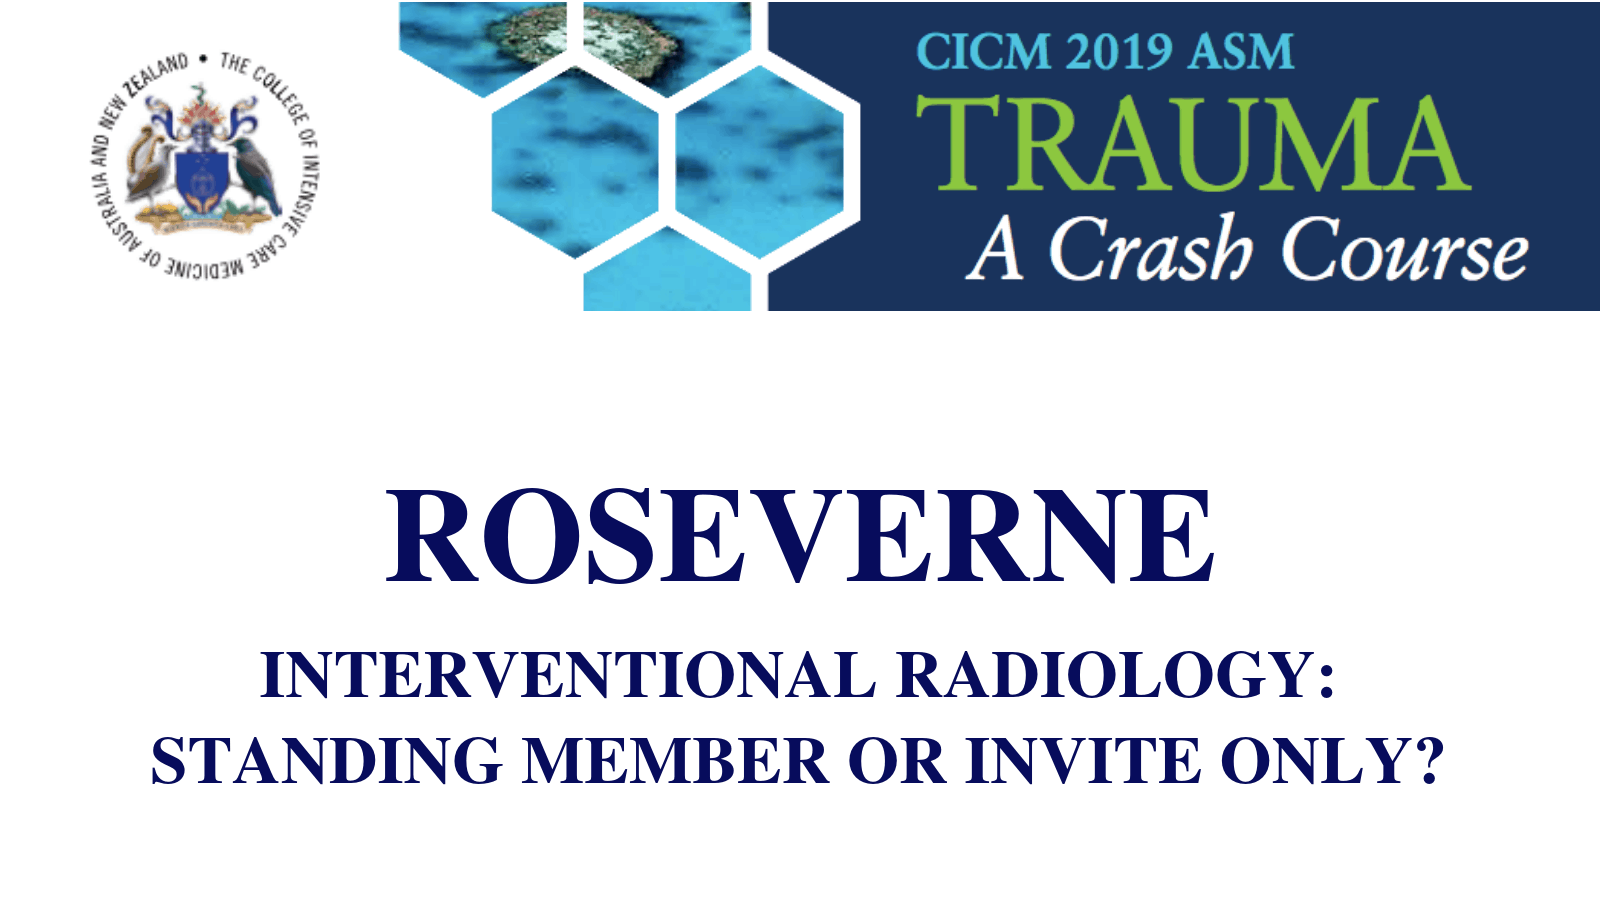 Interventional radiology standing member or invite only